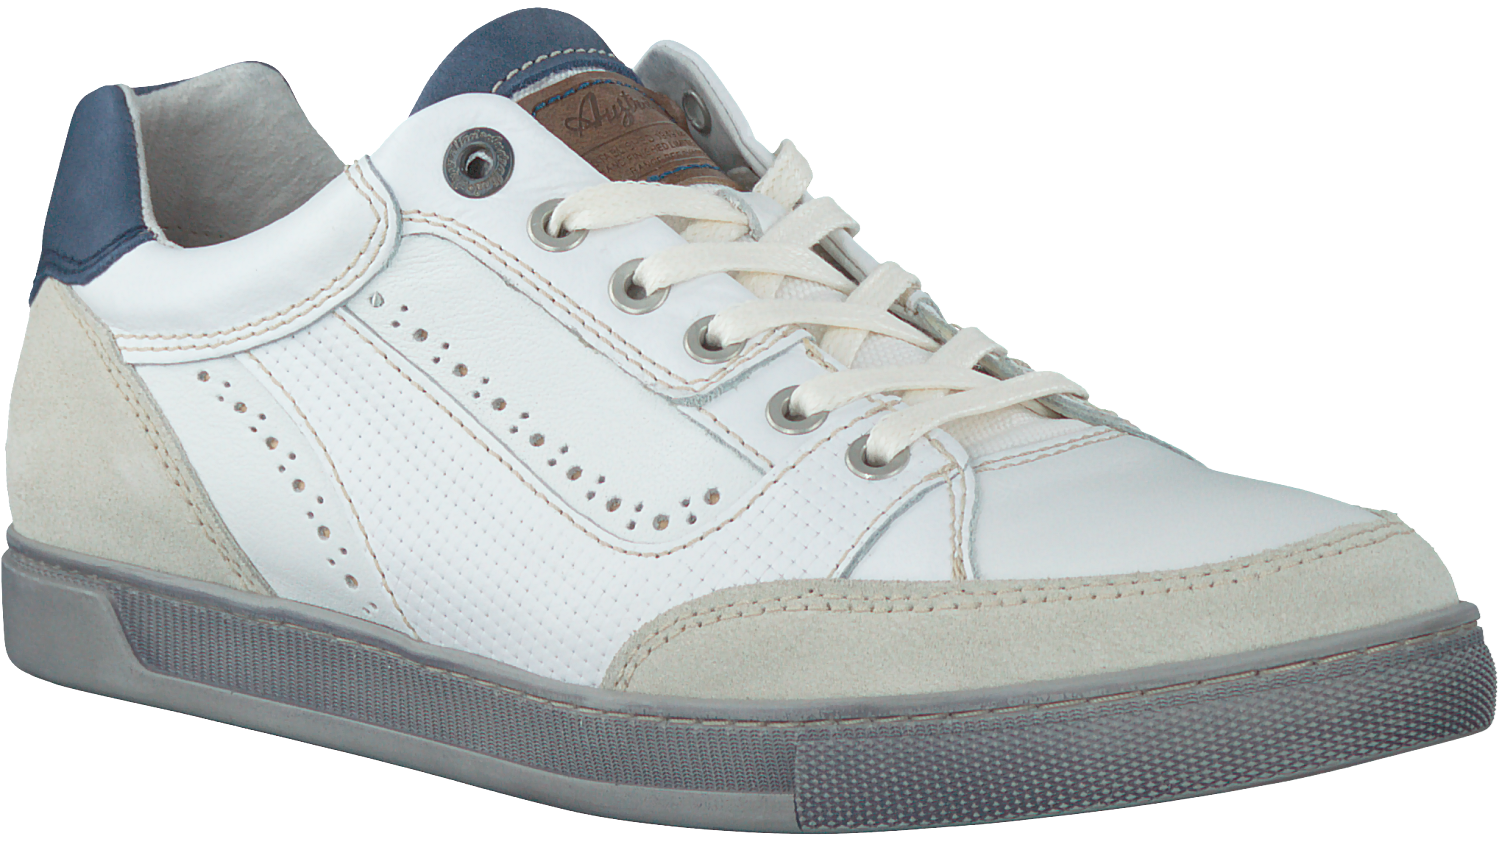 Chaussures Blanches Australian Pour Les Hommes GnEMHWh